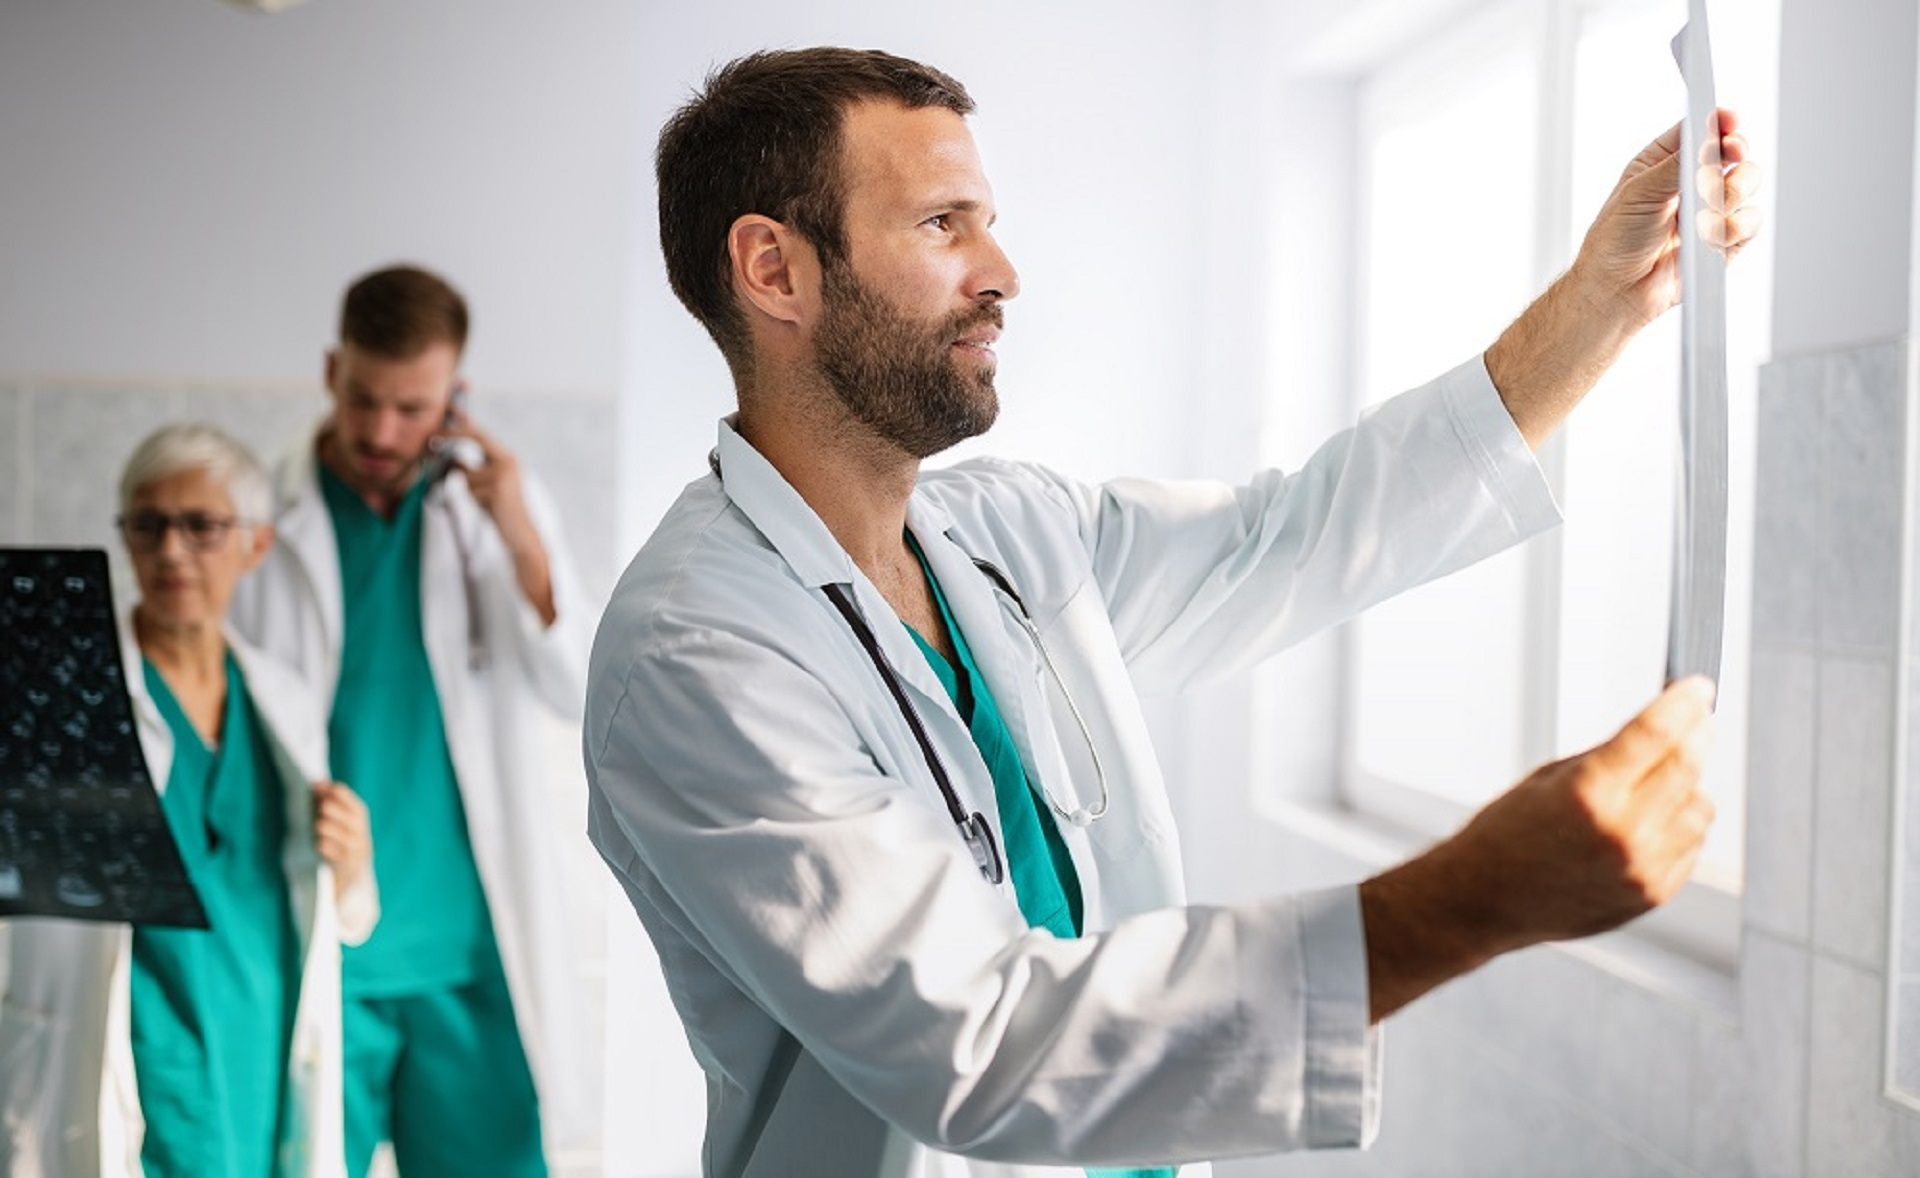 Group of doctors, medical team checking x-rays in a hospital.